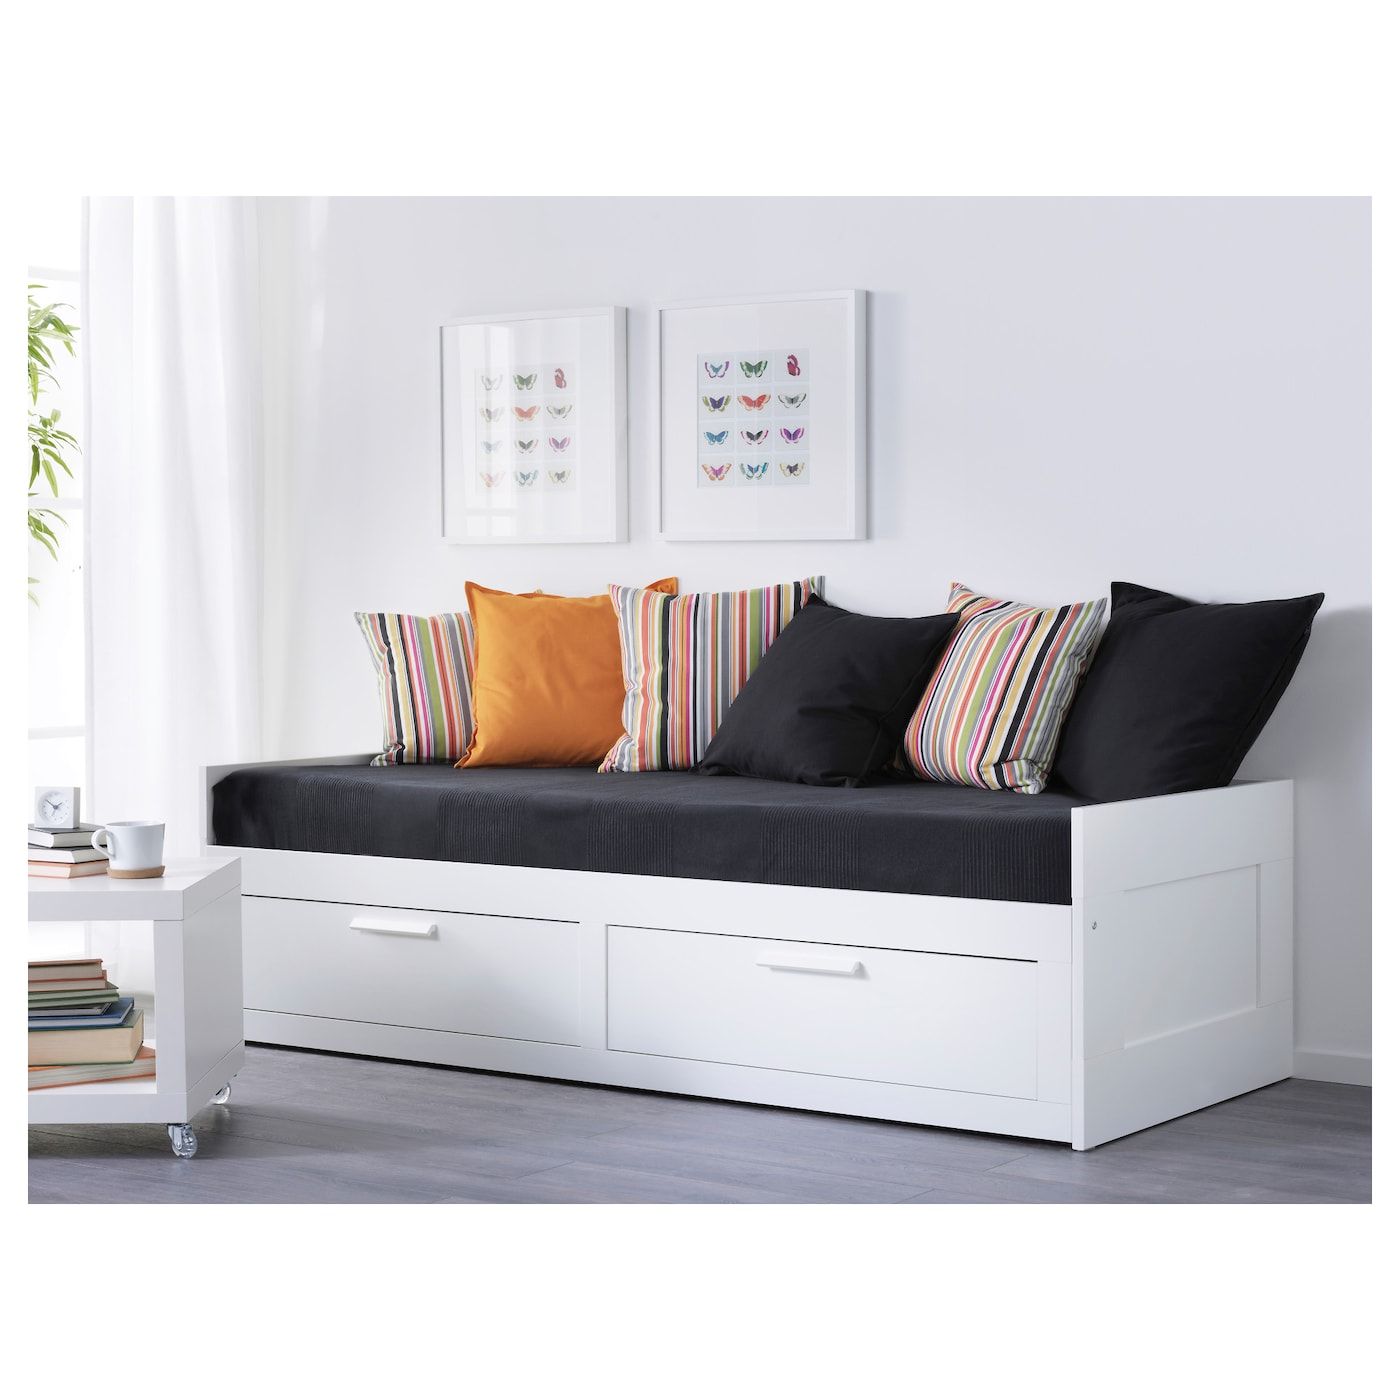 Brimnes day bed w 2 drawers 2 mattresses white moshult firm 80 x 200 cm ikea - Ikea cama divan ...